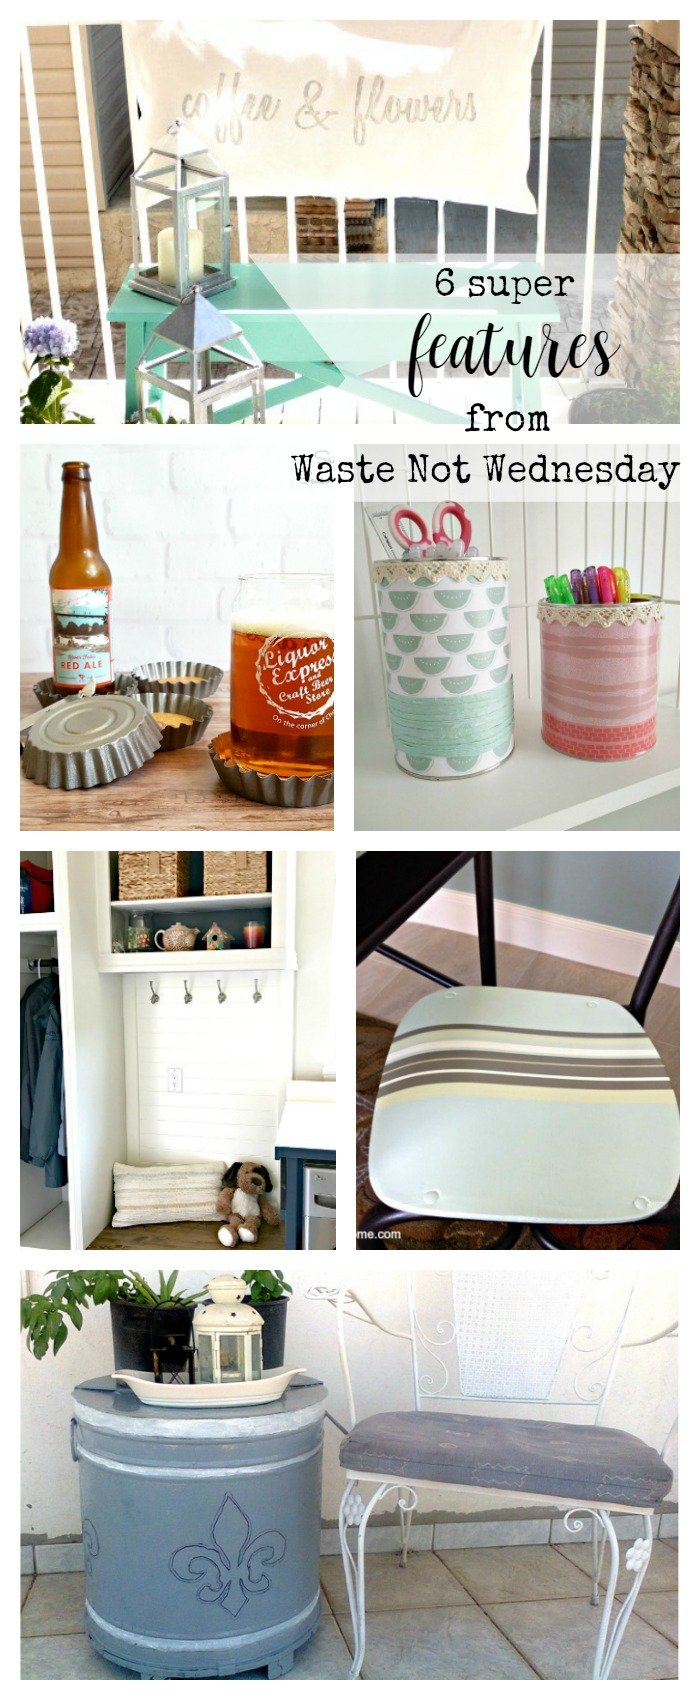 Features from our fun Waste Not Wednesday-54 DIY, Craft, Home Decor and Recipe party this week! Be sure to join us and share your DIY, Craft, Home Decor and favourite recipes! | www.raggedy-bits.com | www.mythriftyhouse.com | www.gratefullyvintage.com | www.salvagesisterandmister.com | www.reinventedkb.com